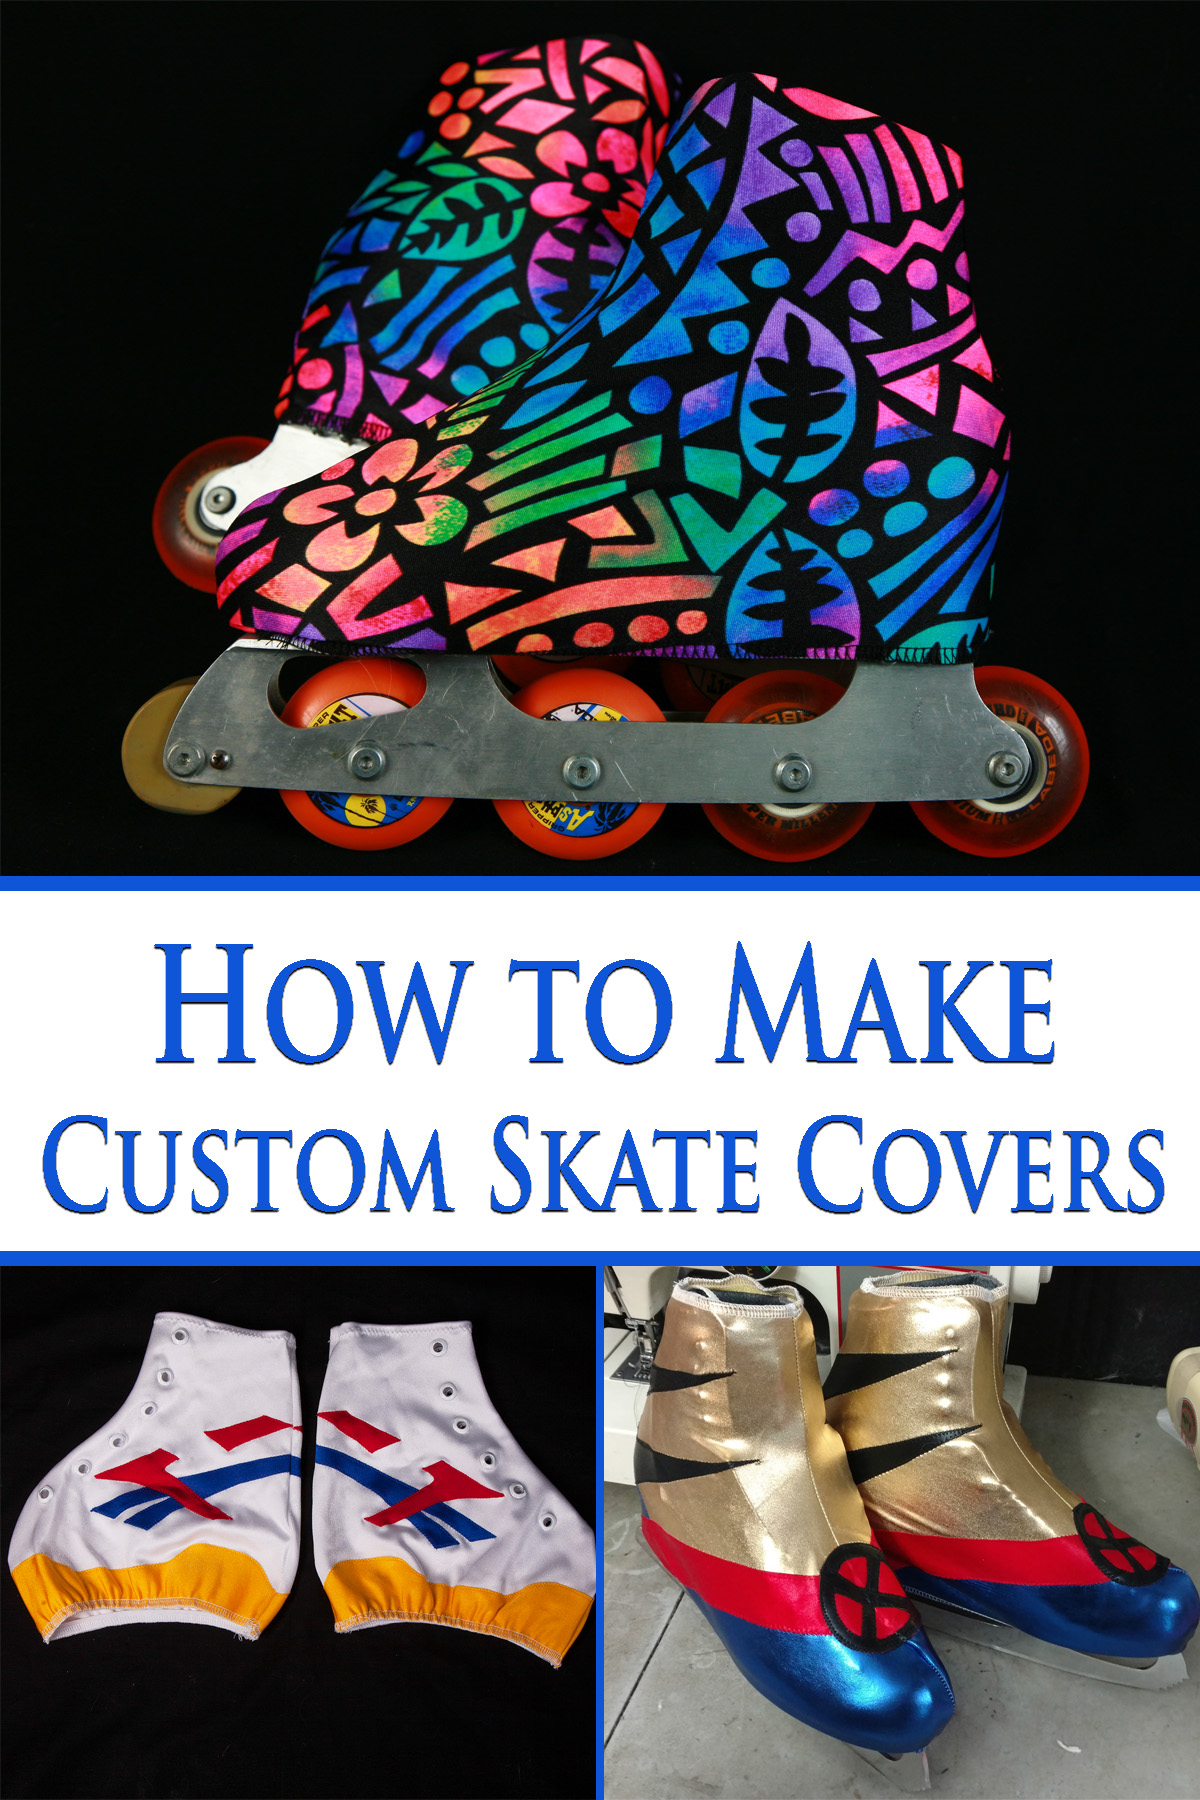 A 3 photo compilation image. It shows 2 pairs of skates with colourful skate covers on them, and a 3rd pair of skate covers against a black background.